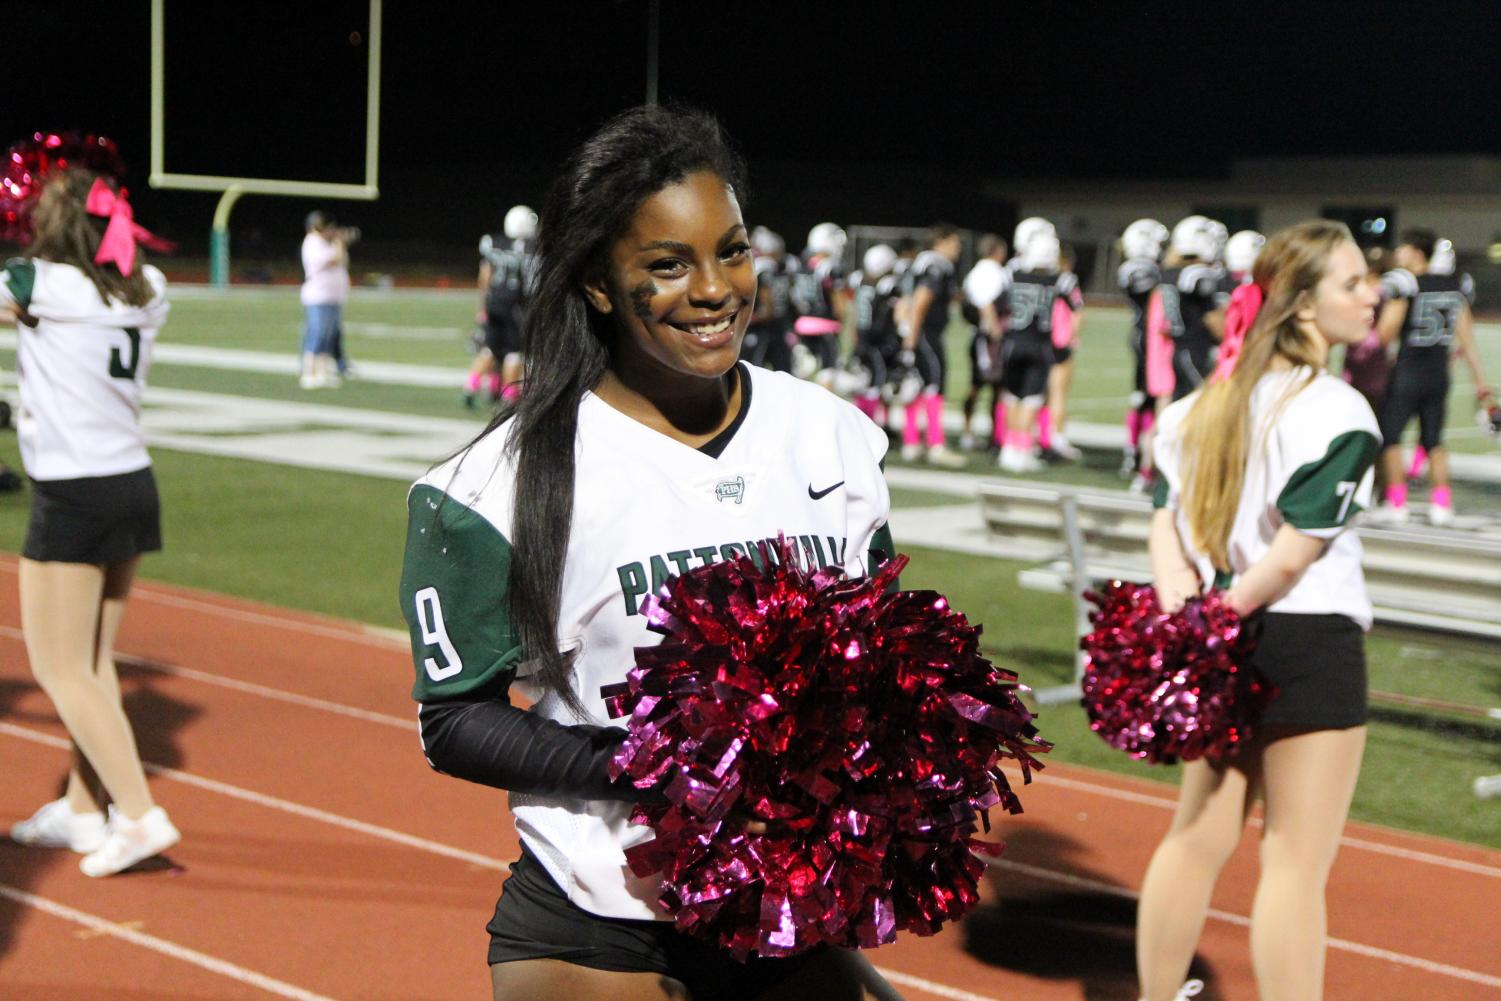 Senior Makayla Harden cheers on the sideline of a football game. She was selected as an All-State cheerleader during their state competition on Dec. 1.